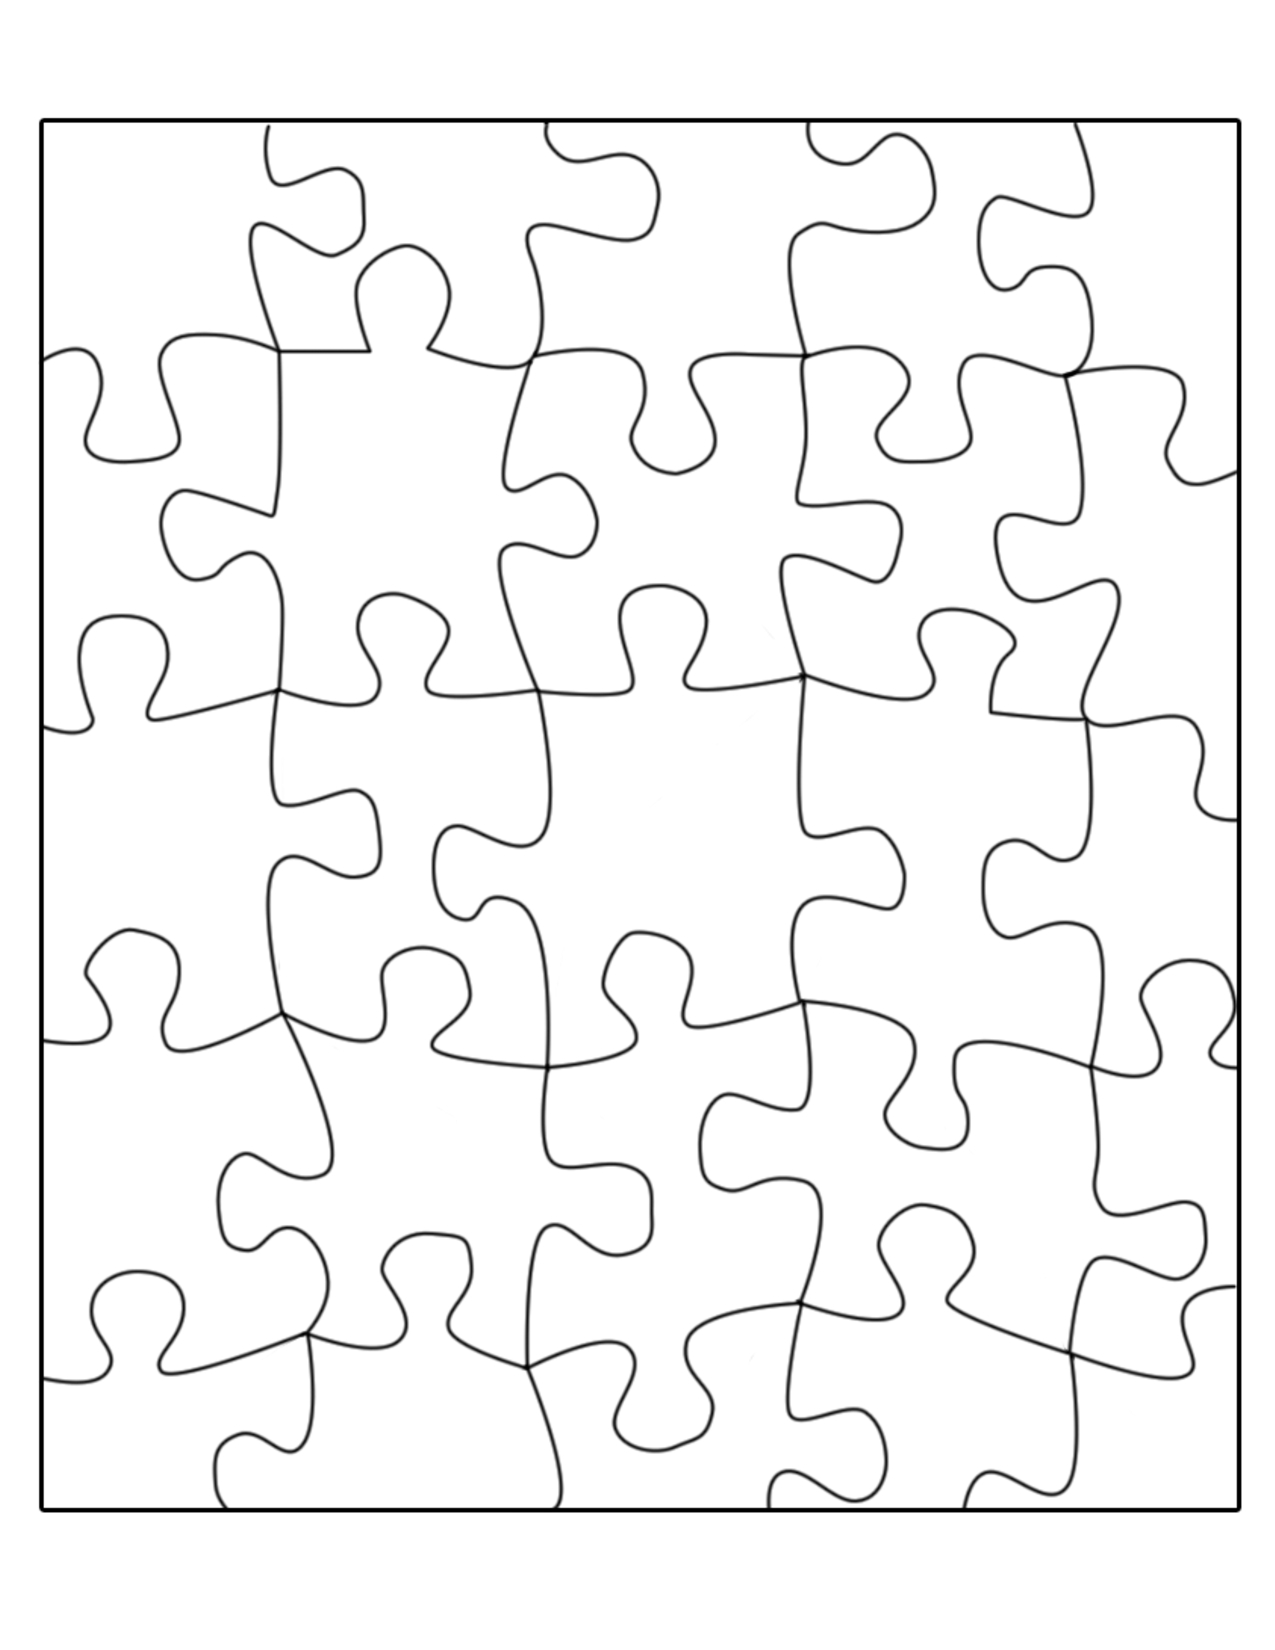 Free Puzzle Template, Download Free Clip Art, Free Clip Art On - Printable Jigsaw Puzzle Pieces